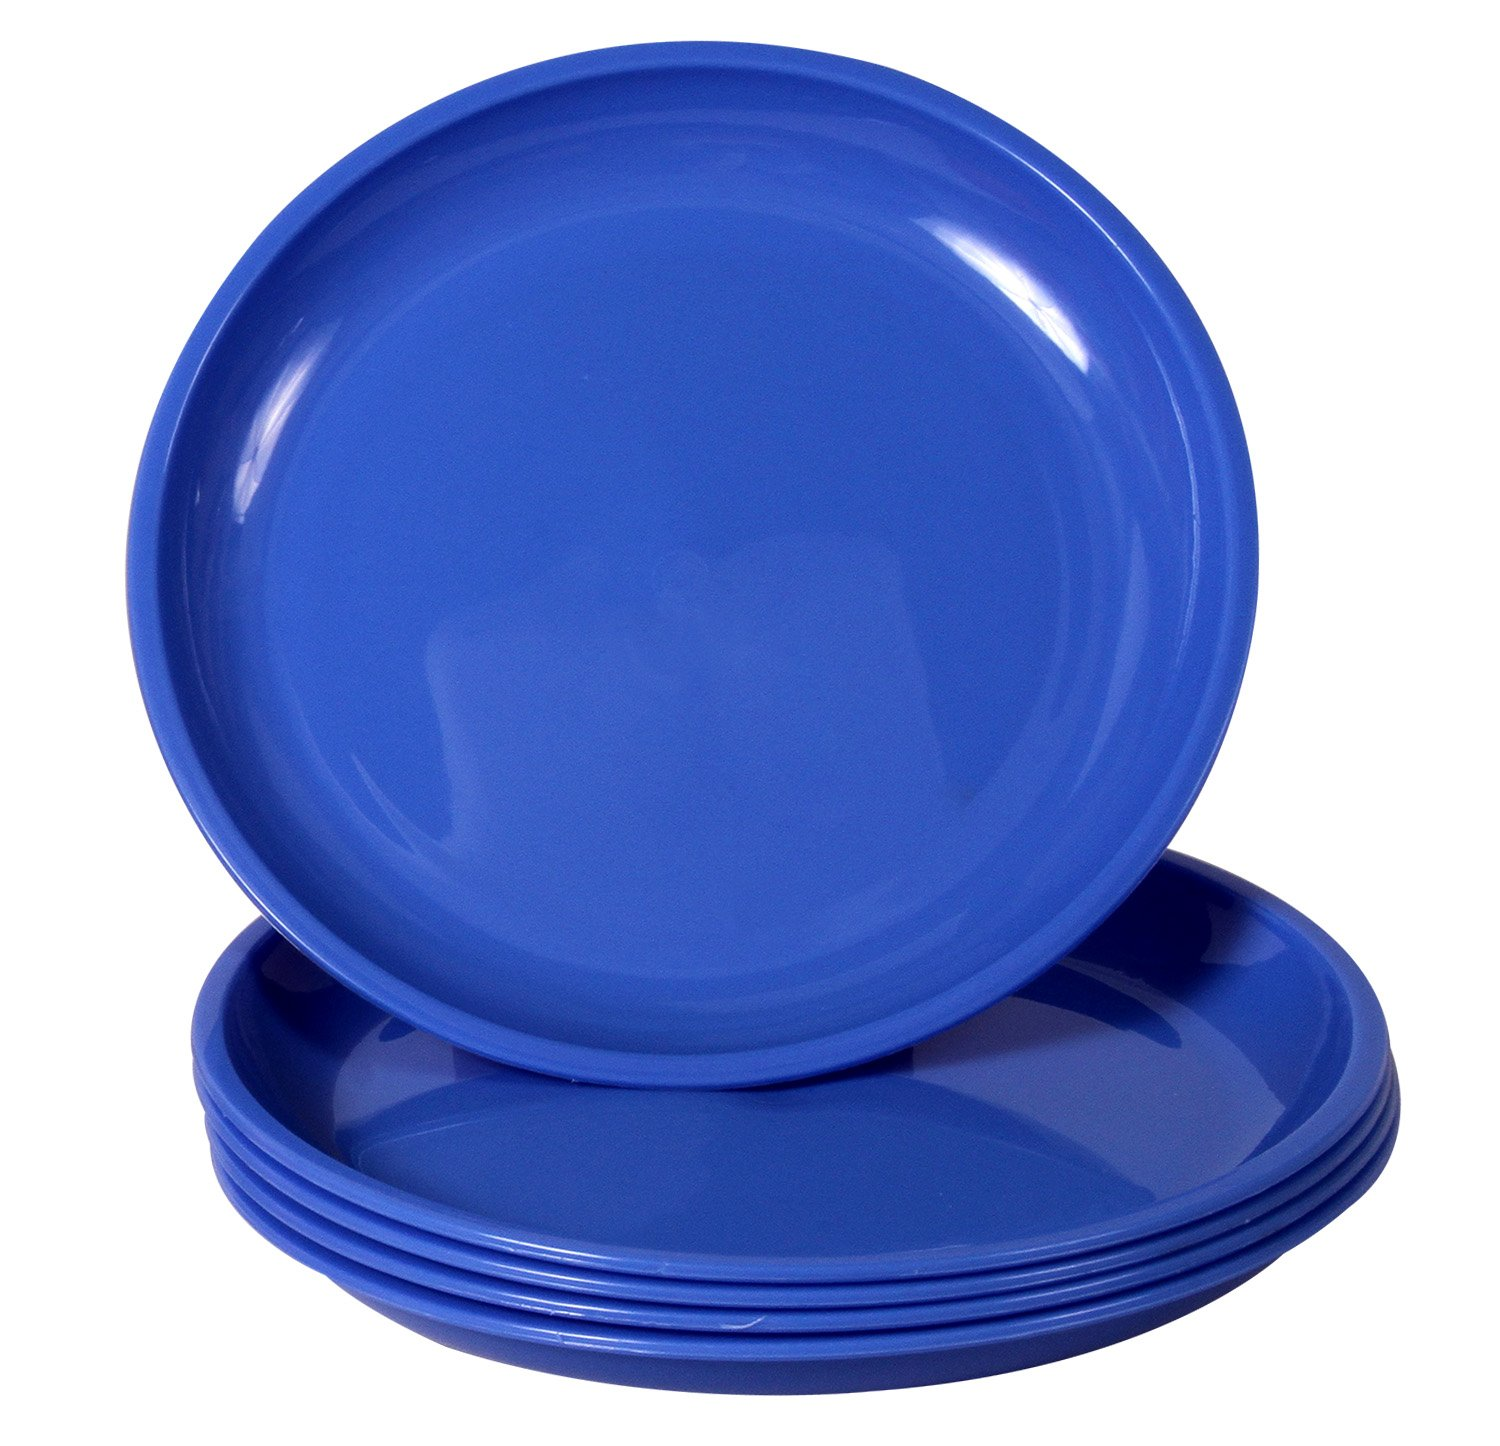 Buy Ruchi Round Dinner Plates 25.4cm Set of 6 Blue Online at Low Prices in India - Amazon.in  sc 1 st  Amazon.in & Buy Ruchi Round Dinner Plates 25.4cm Set of 6 Blue Online at Low ...